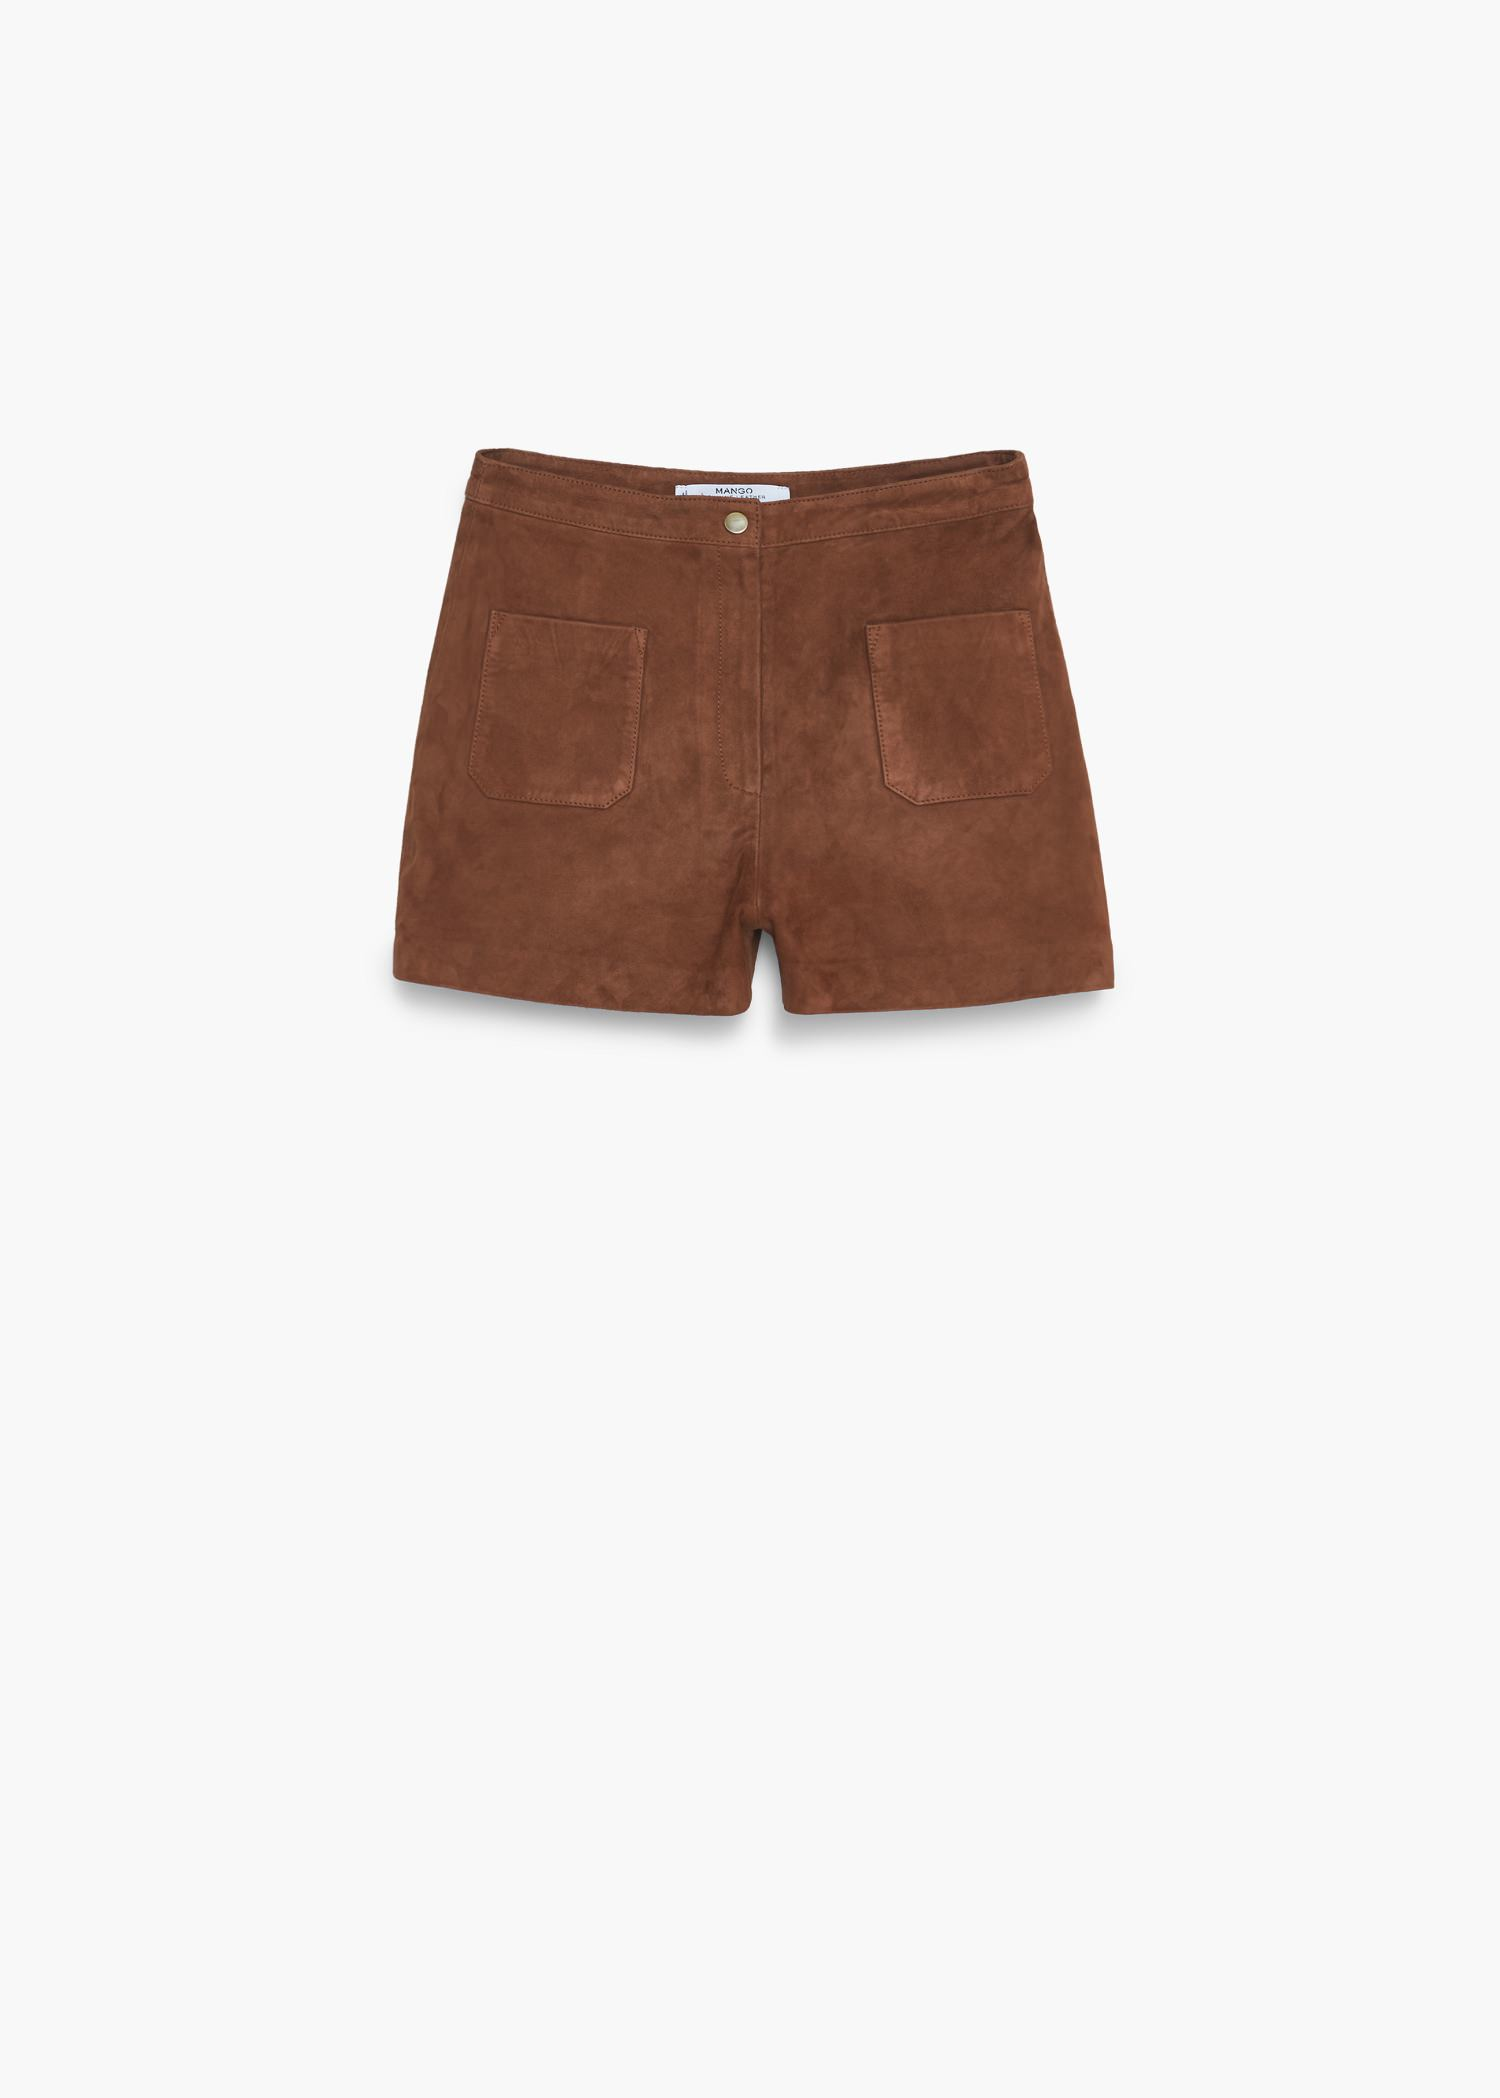 Find great deals on eBay for brown suede shorts. Shop with confidence.